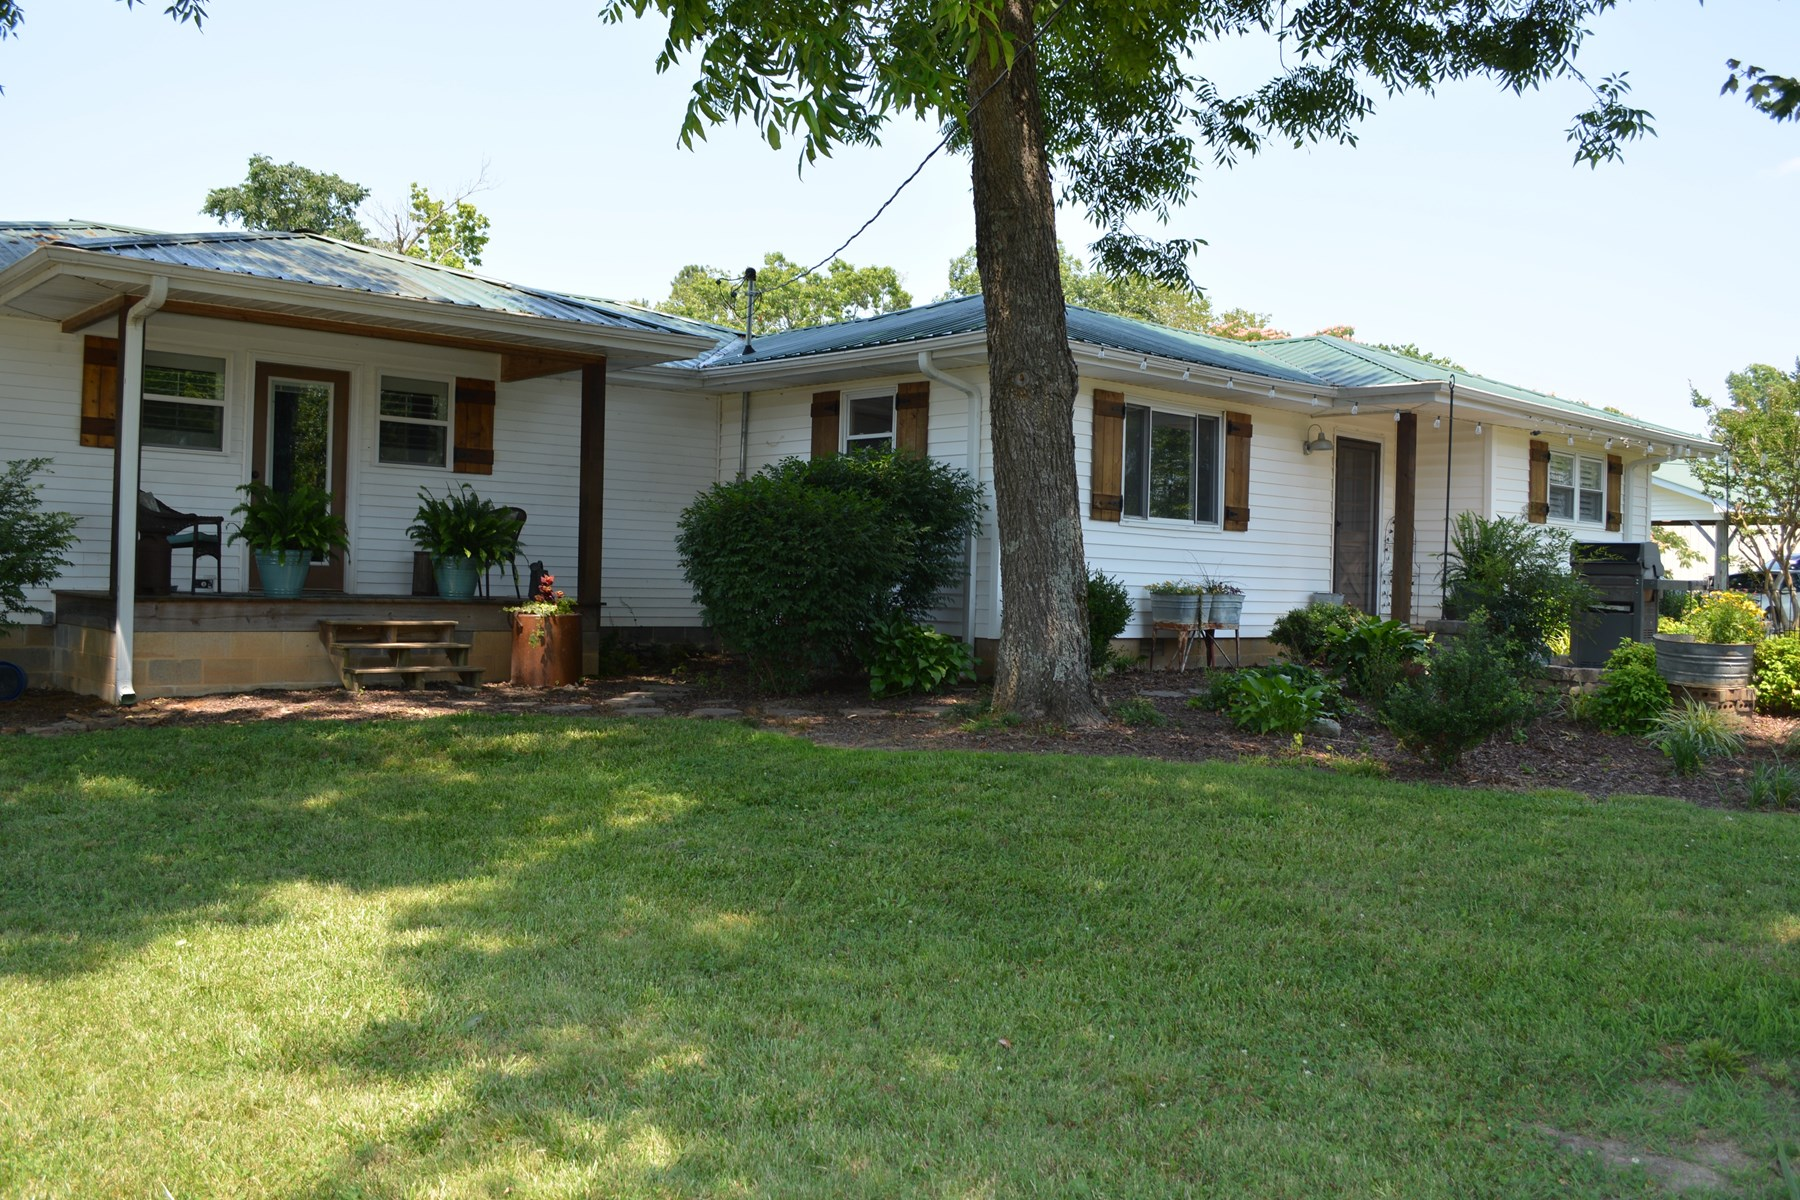 Country Home for Sale in Huntingdon, TN